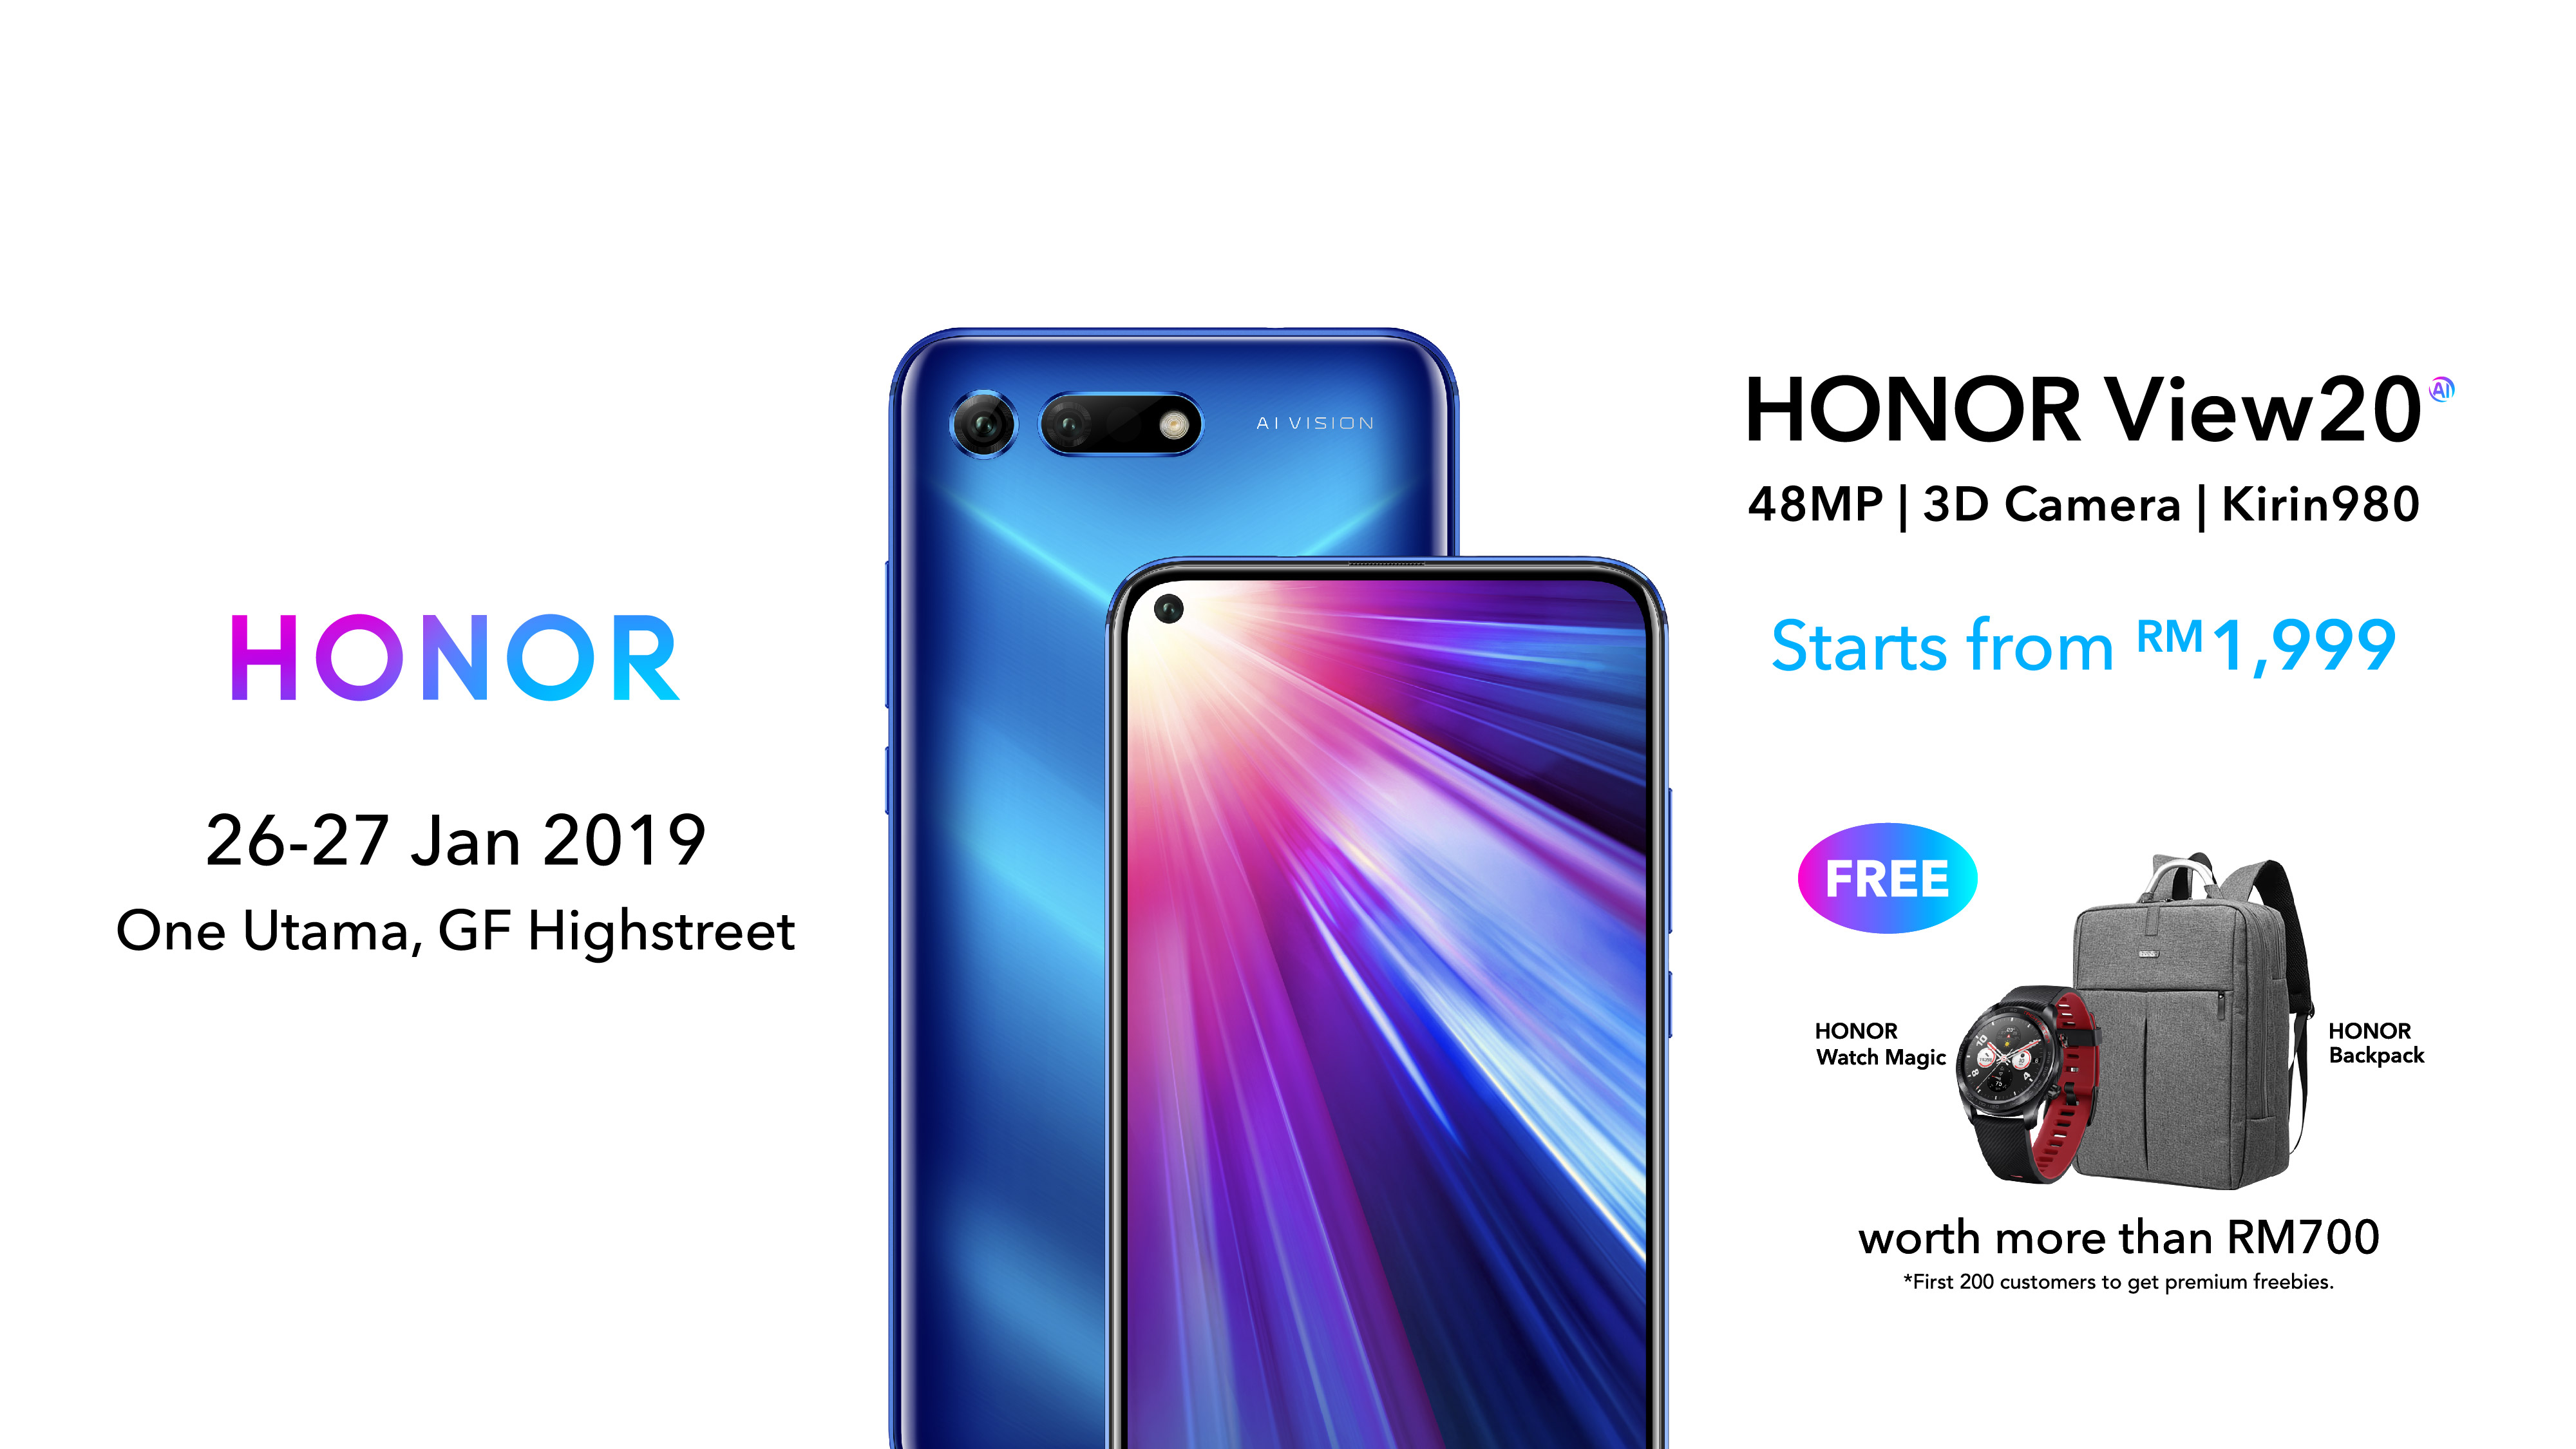 Honor View20 Sets New Standards With World's First Technologies